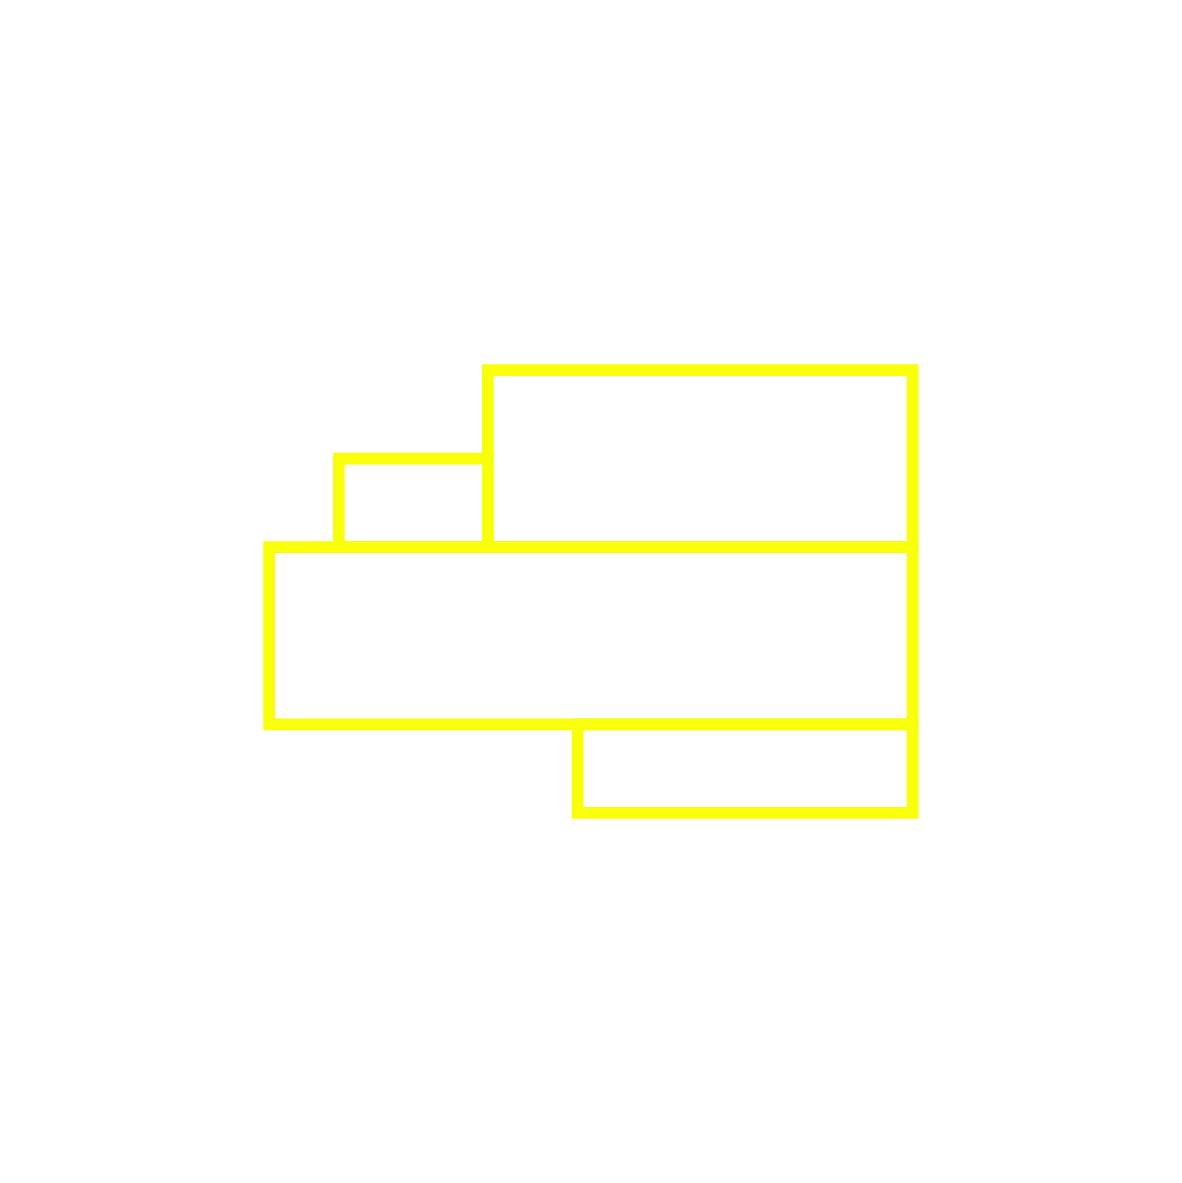 COLD THERAPY